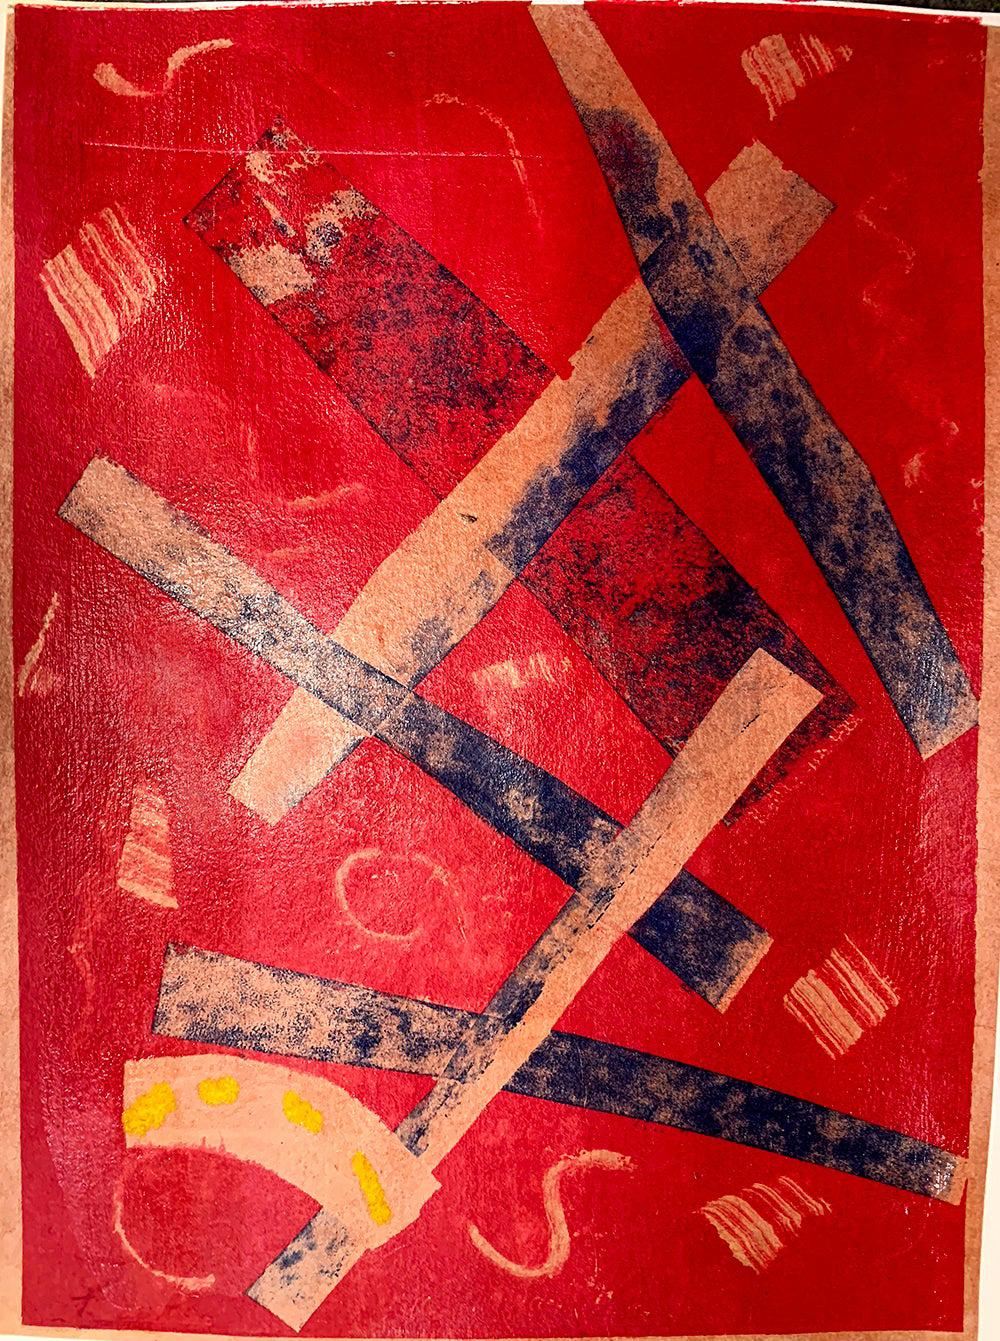 Criss Cross, Unique Monotype, Contemporary Abstract Work on Paper, Edition of 1